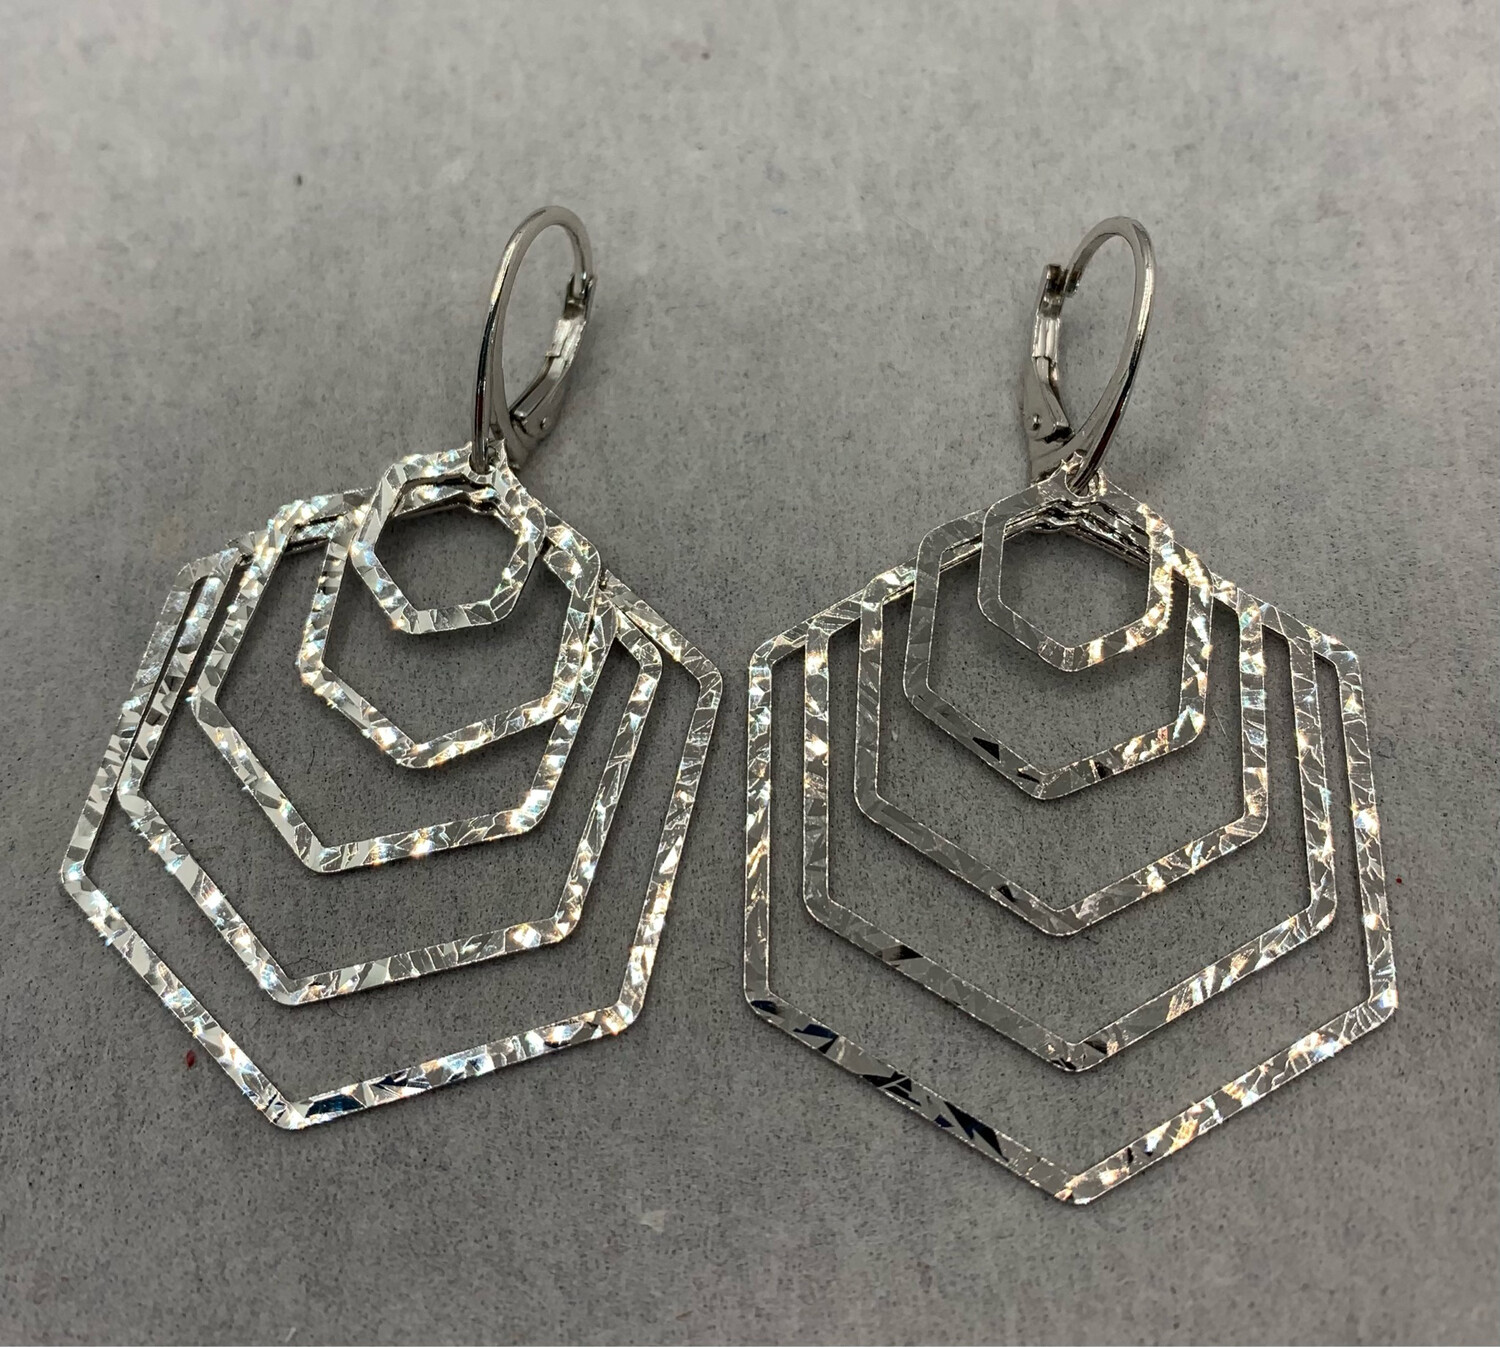 Concentric Hexagon Sterling Silver Earrings